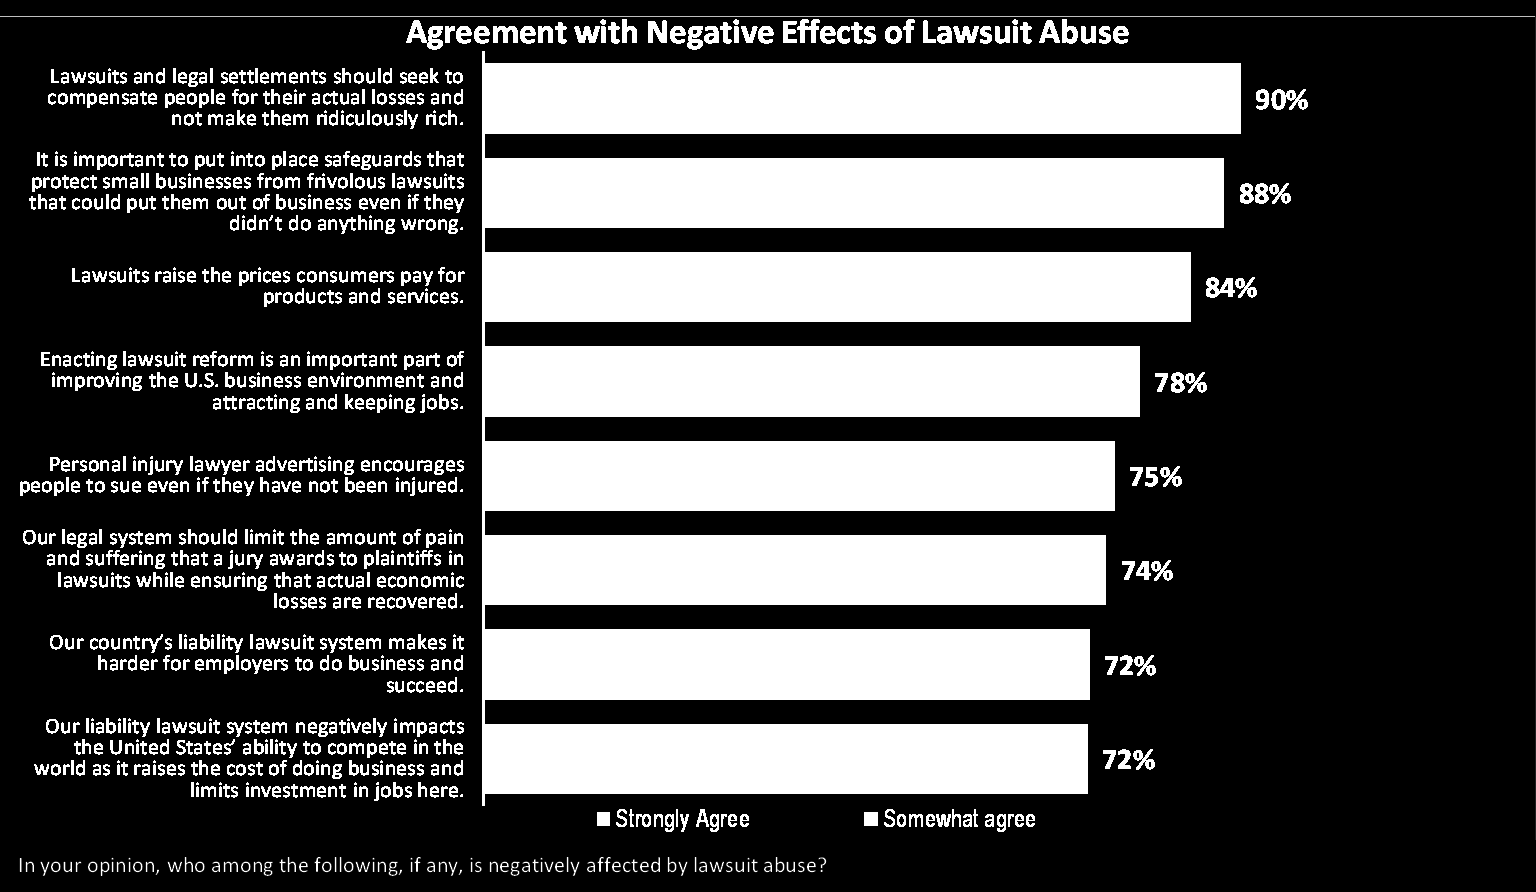 Across the board, voters see the effects of lawsuit abuse and the need for reform.